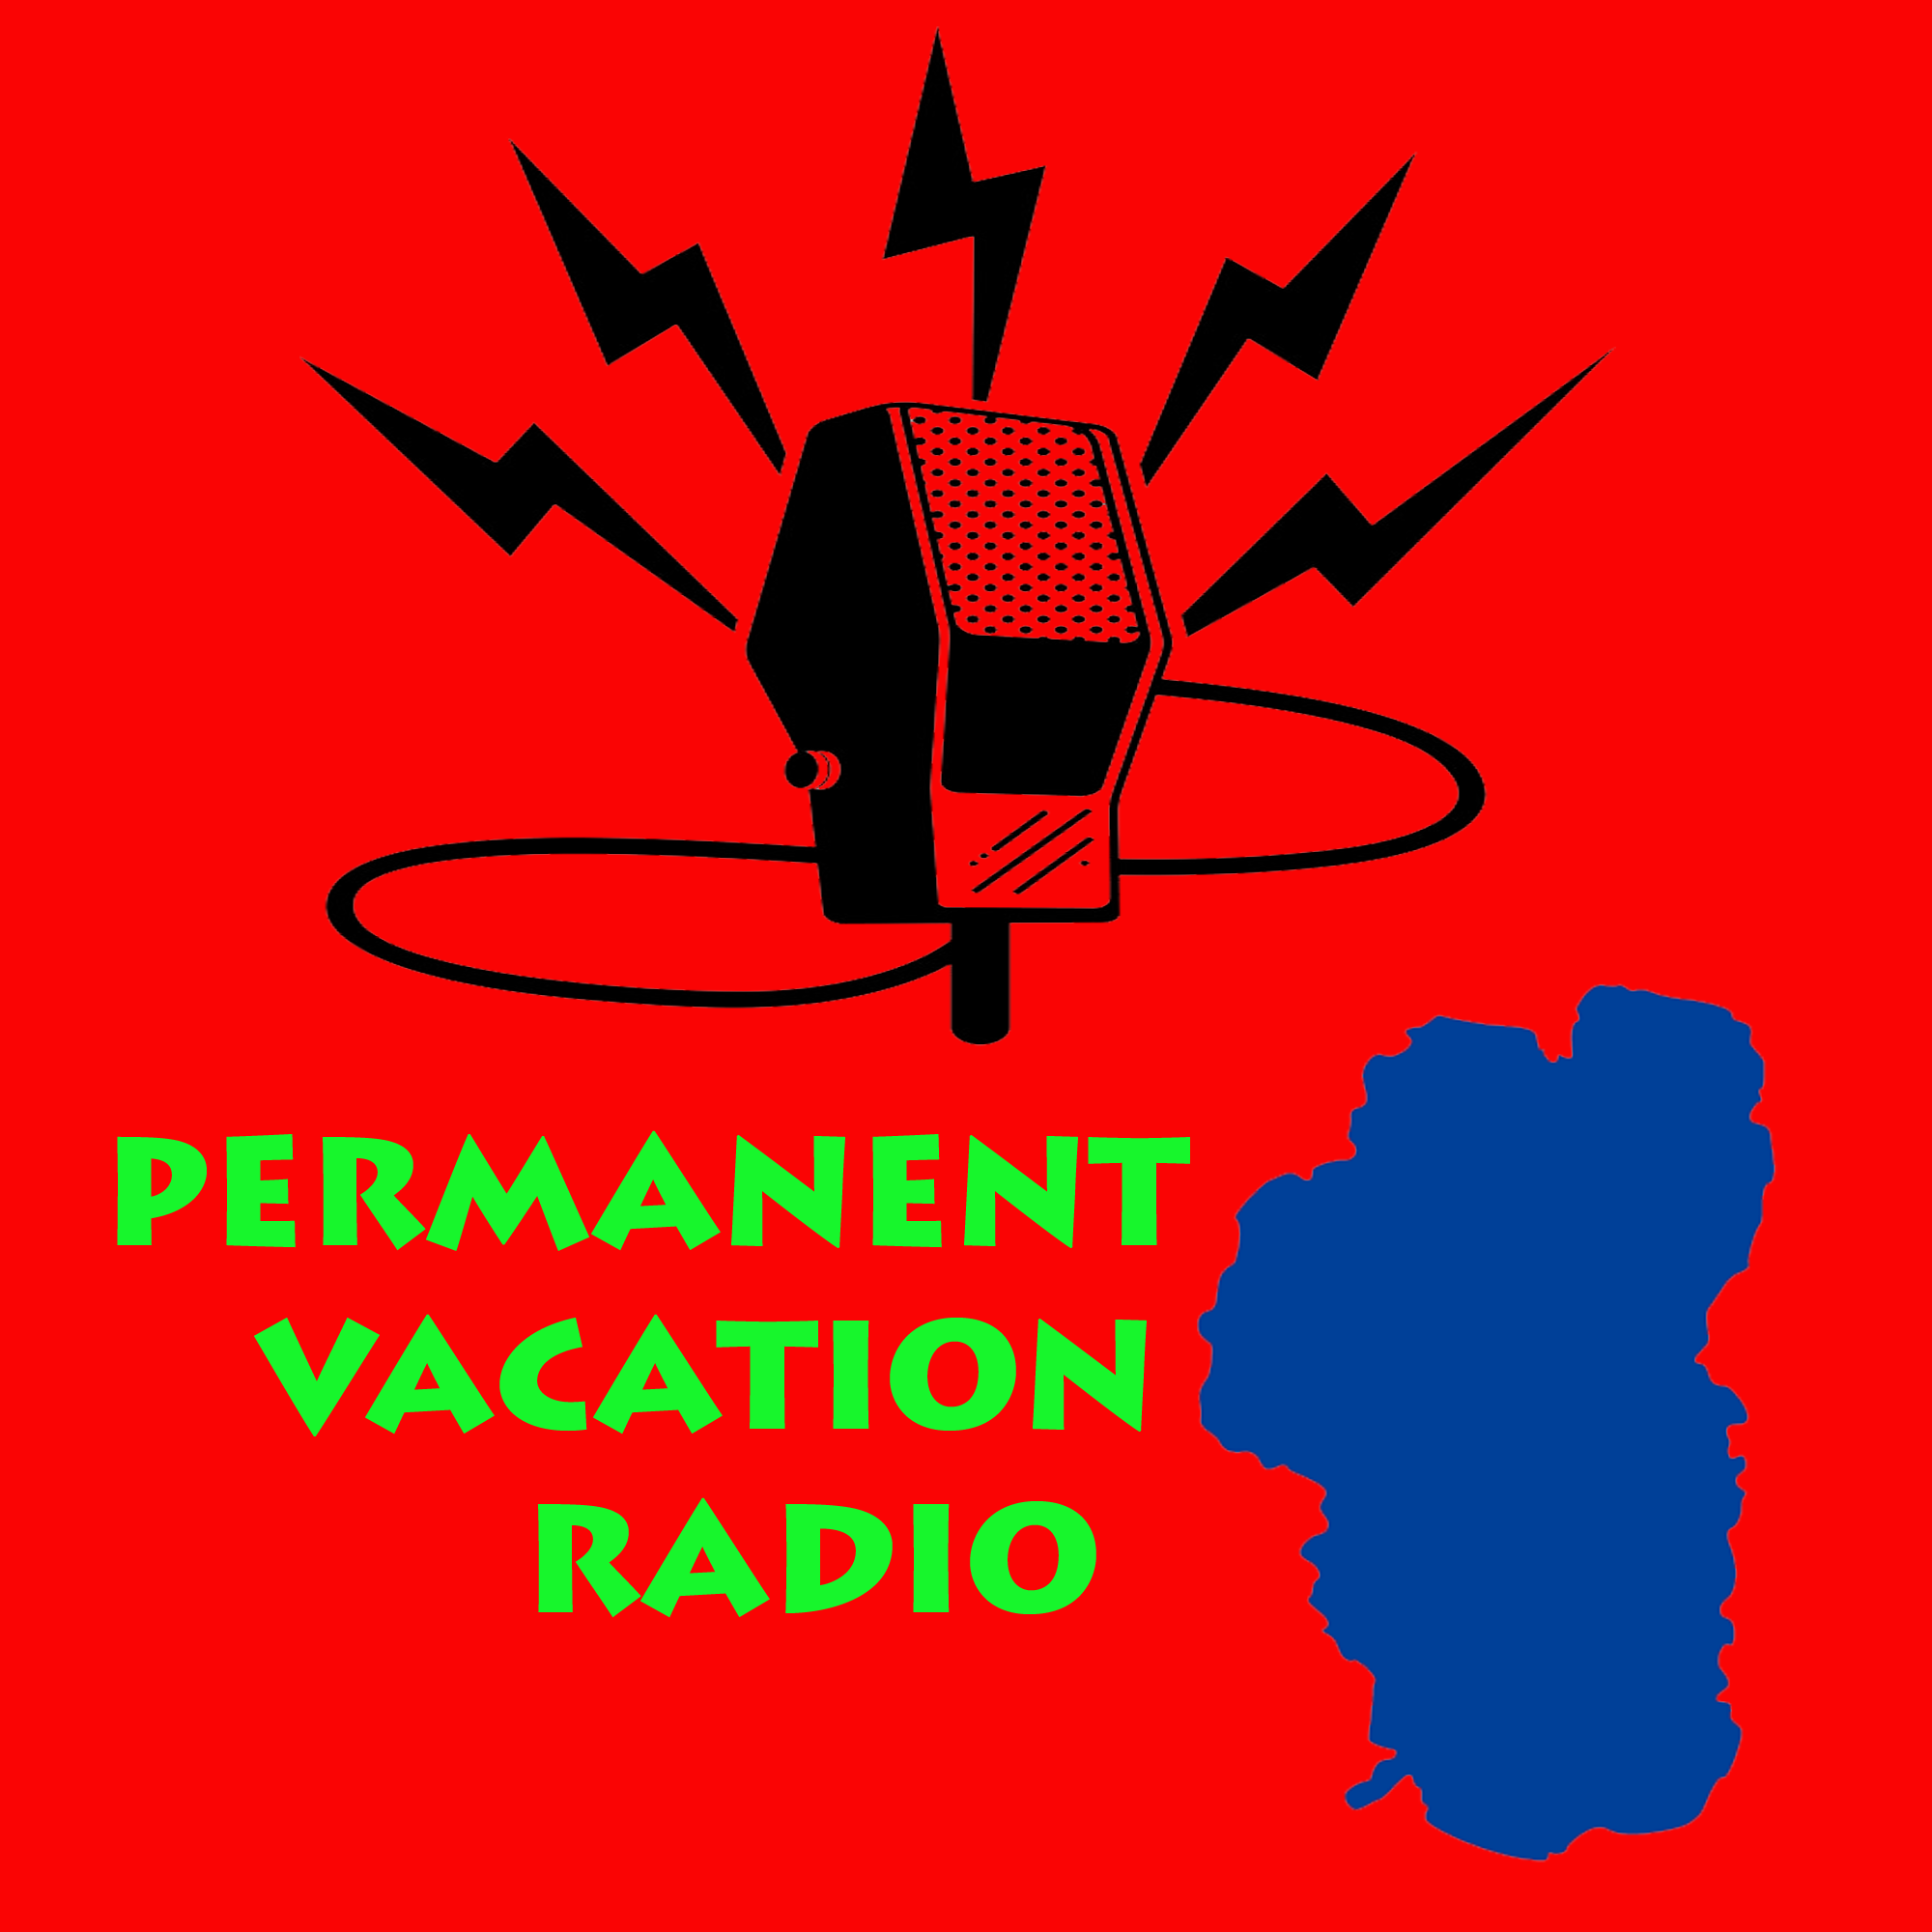 Permanent Vacation Radio